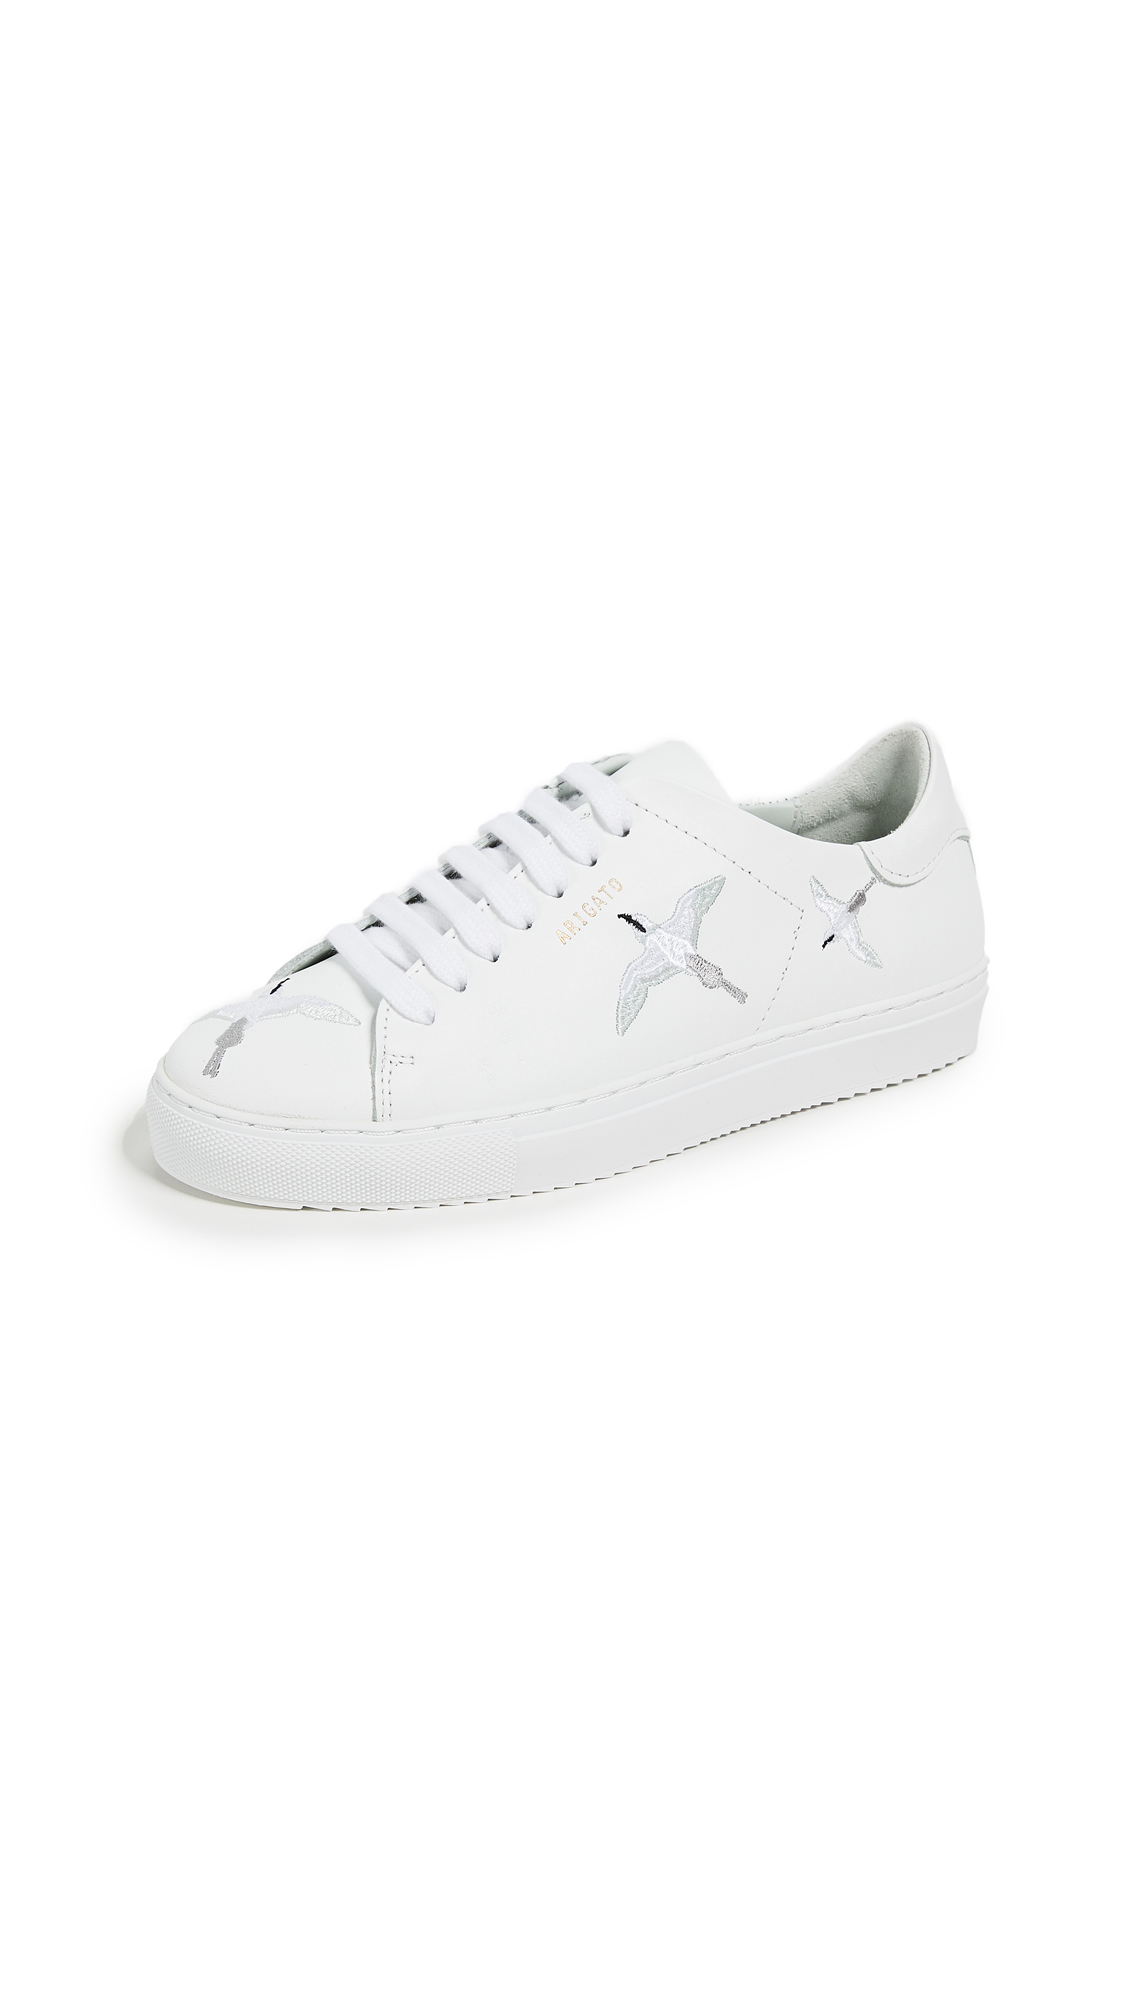 Axel Arigato Clean 90 Embroidery Sneakers - White